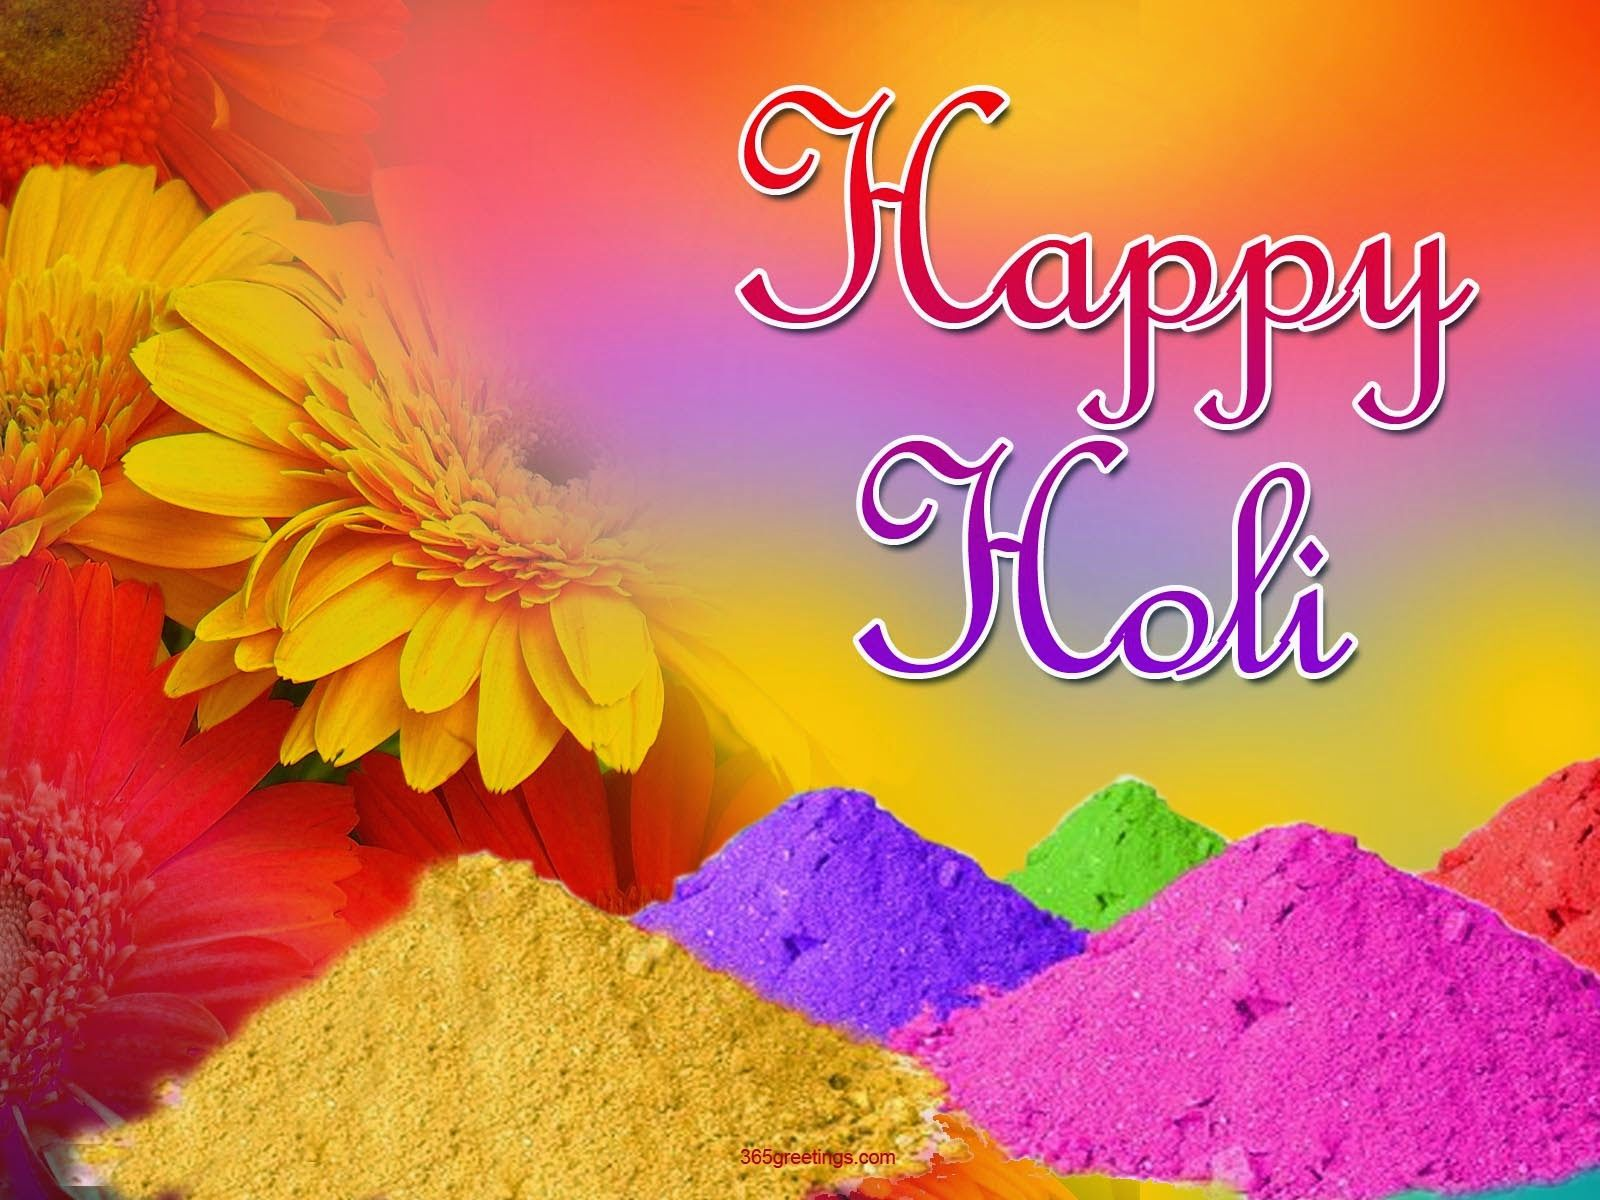 Colorful Holi 2015 Messages Quotes Greetings Wallpapers Happy Holi